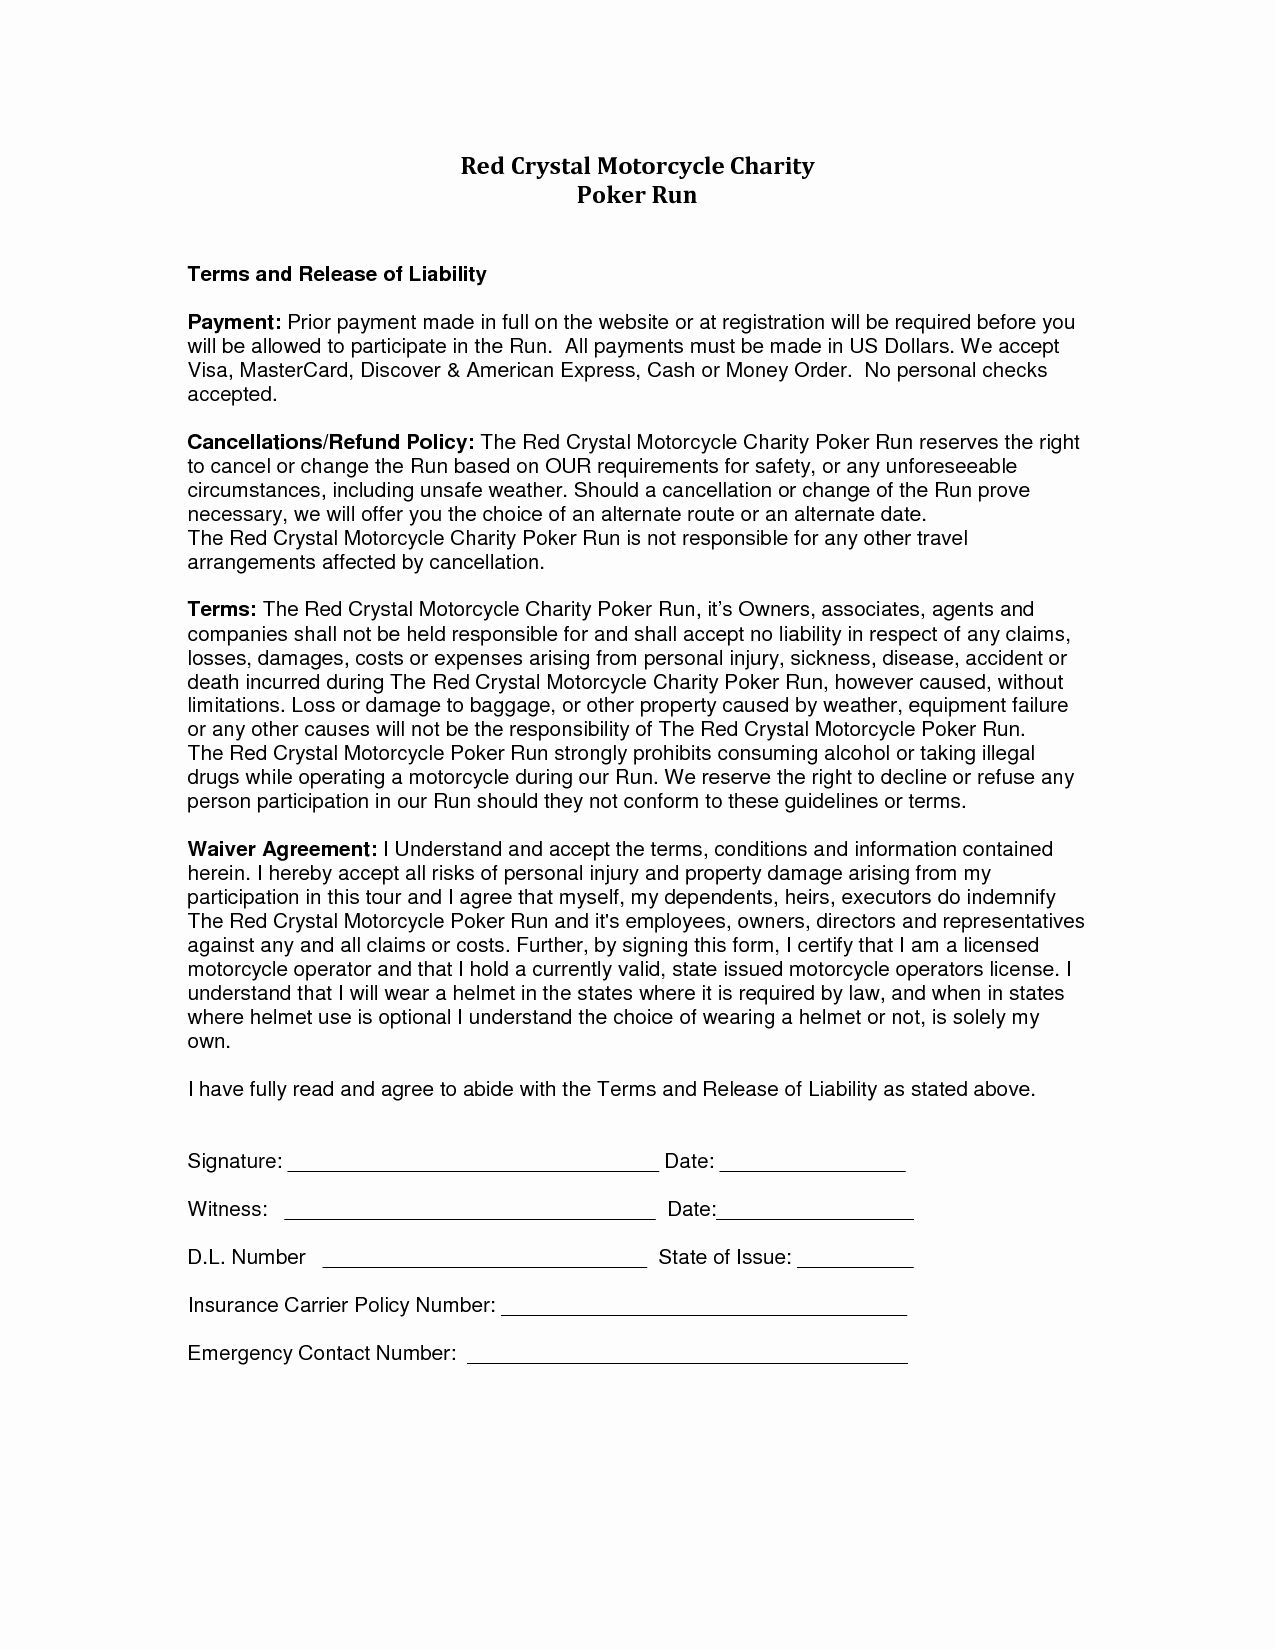 Liability Release Form Template Elegant Liability Release Form Template Free Printable Documents Flyer Template Templates Reference Letter Release of responsibility waiver template